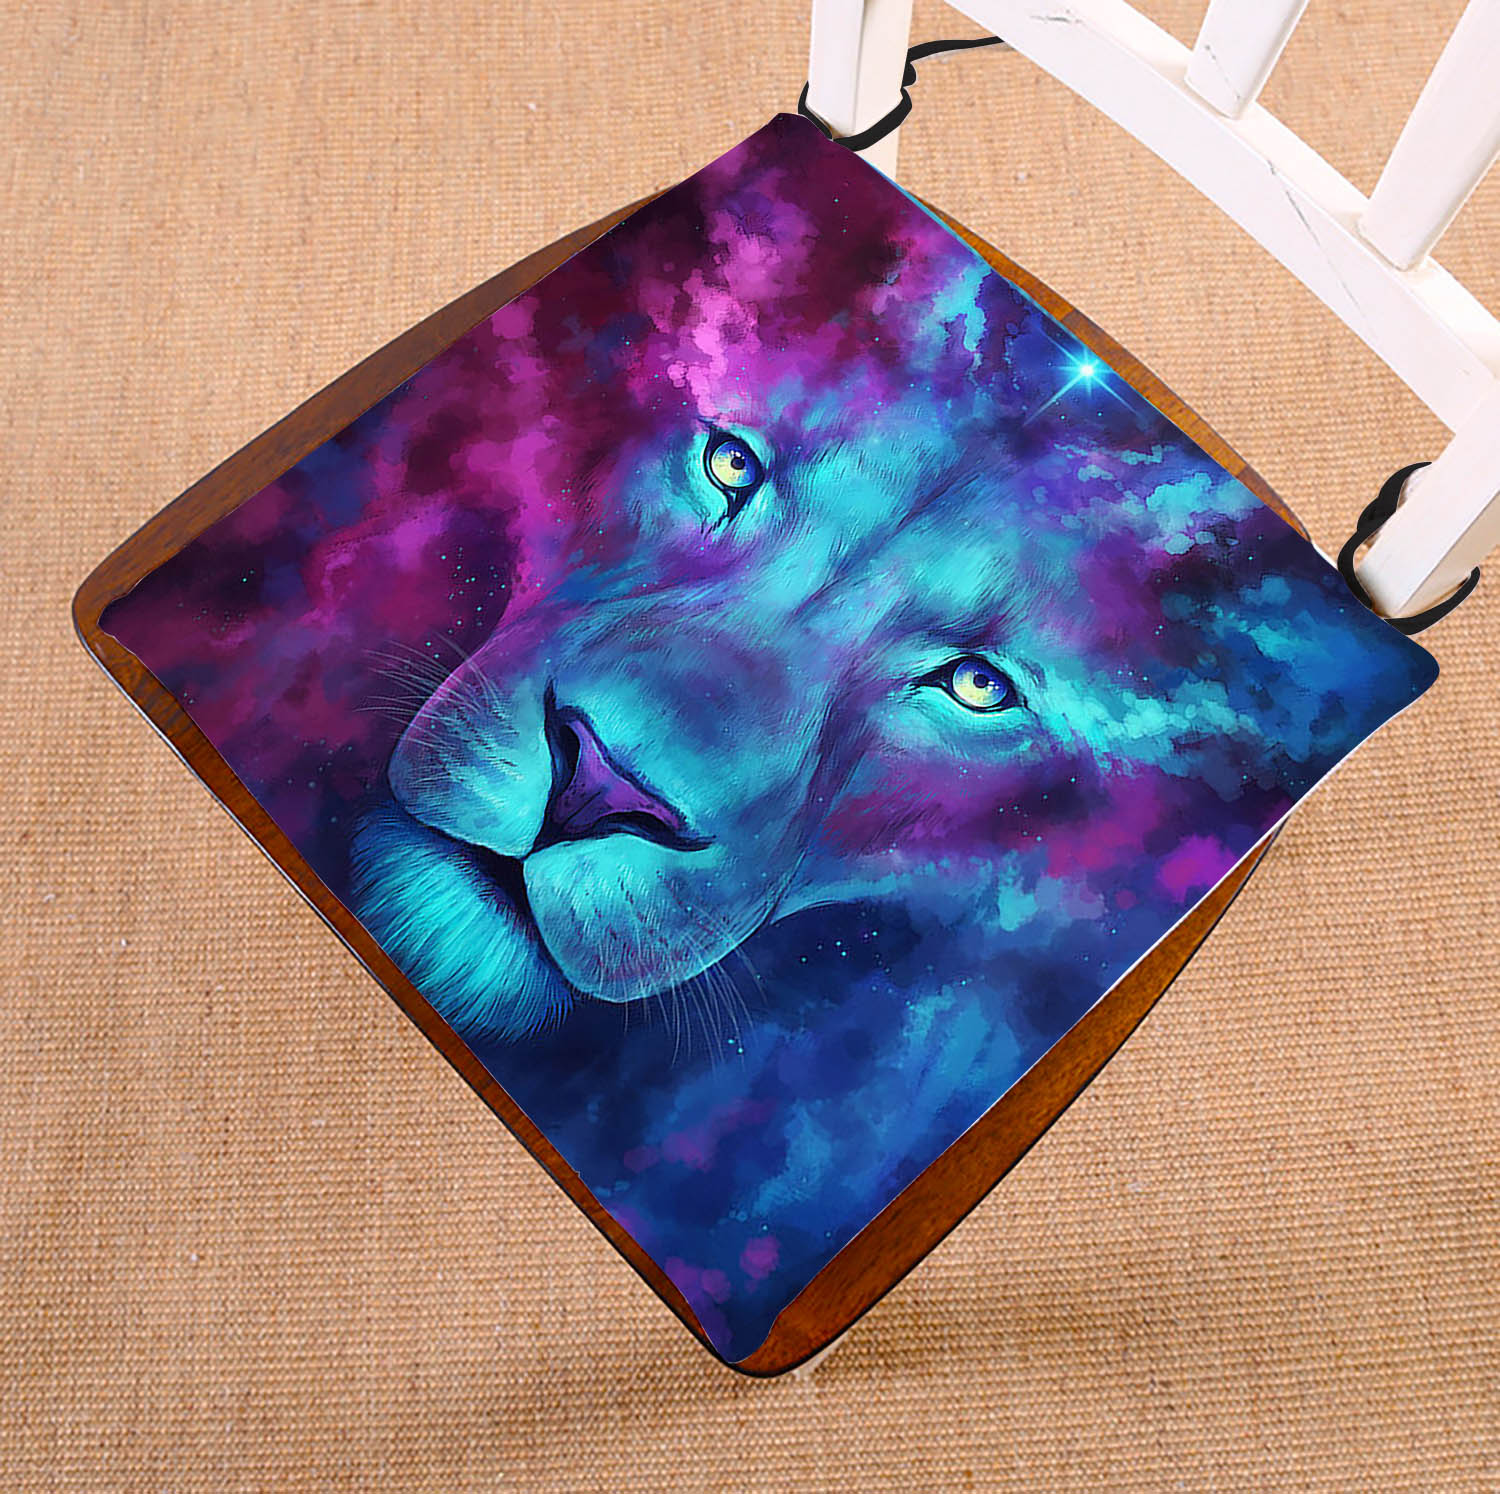 GCKG Galaxy Lion Chair Cushion,Galaxy Lion Chair Pad Seat Cushion Chair Cushion Floor Cushion with Breathable Memory Inner Cushion and Ties Two Sides Printing 16x16 inch